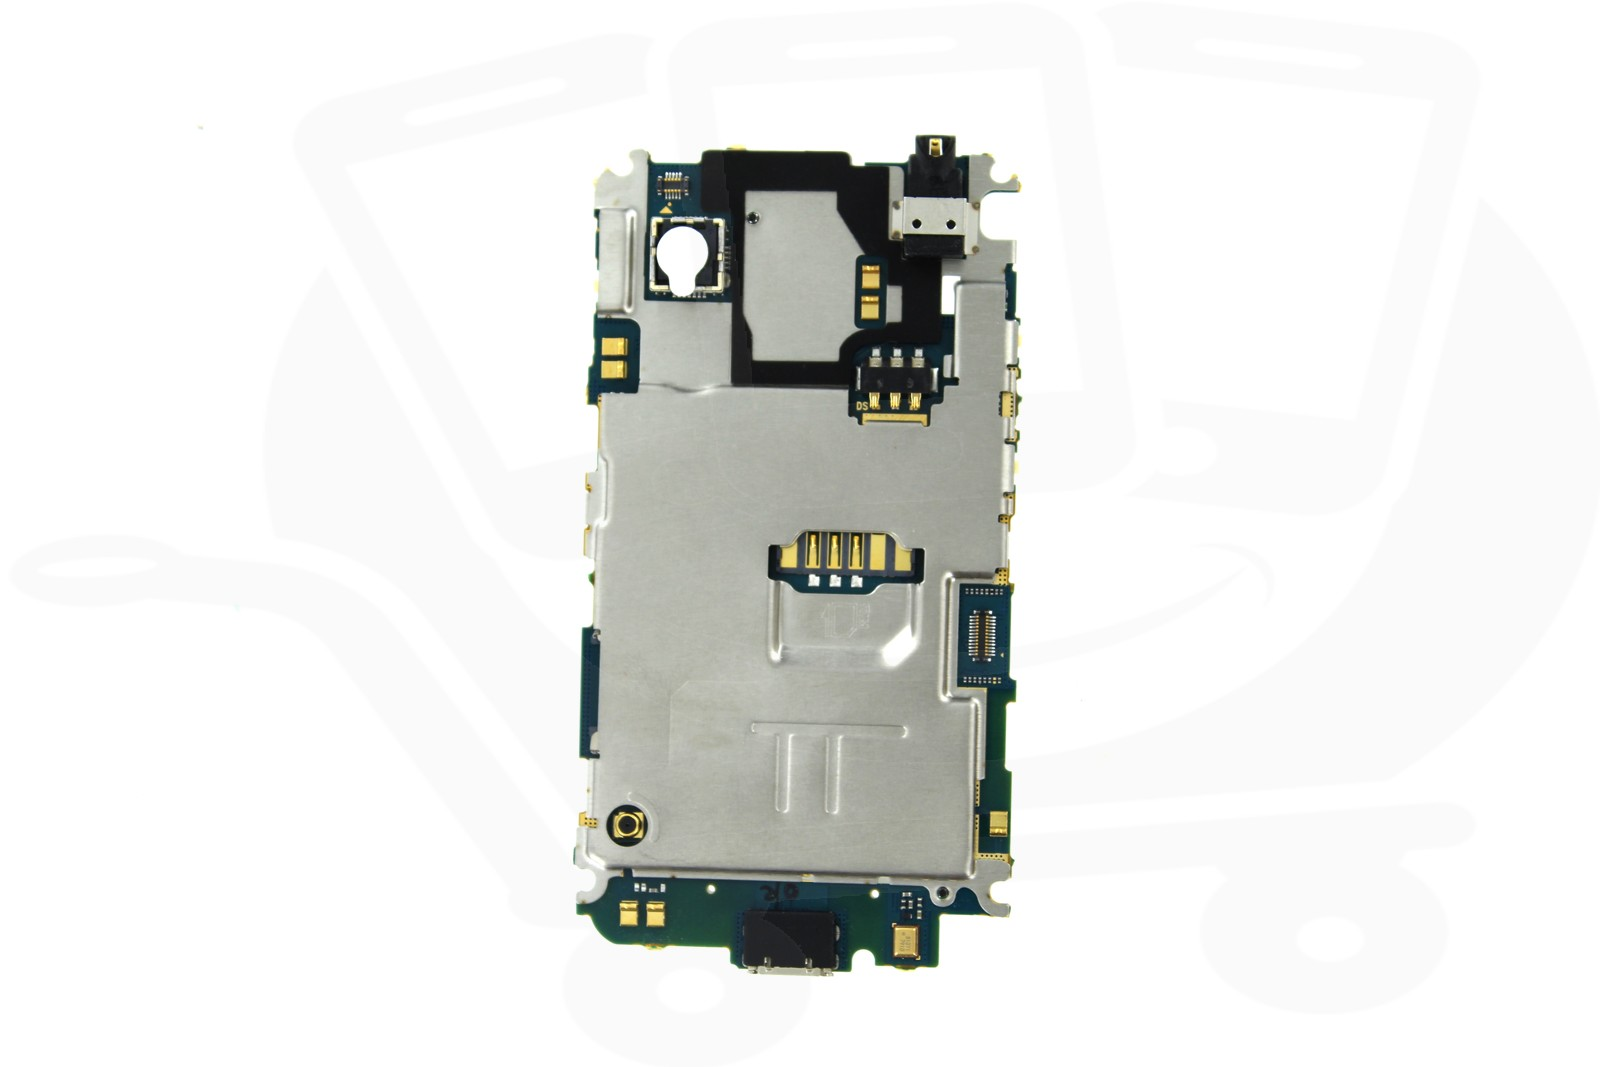 Samsung Star 3 S5222 Motherboard - GH82-06311A